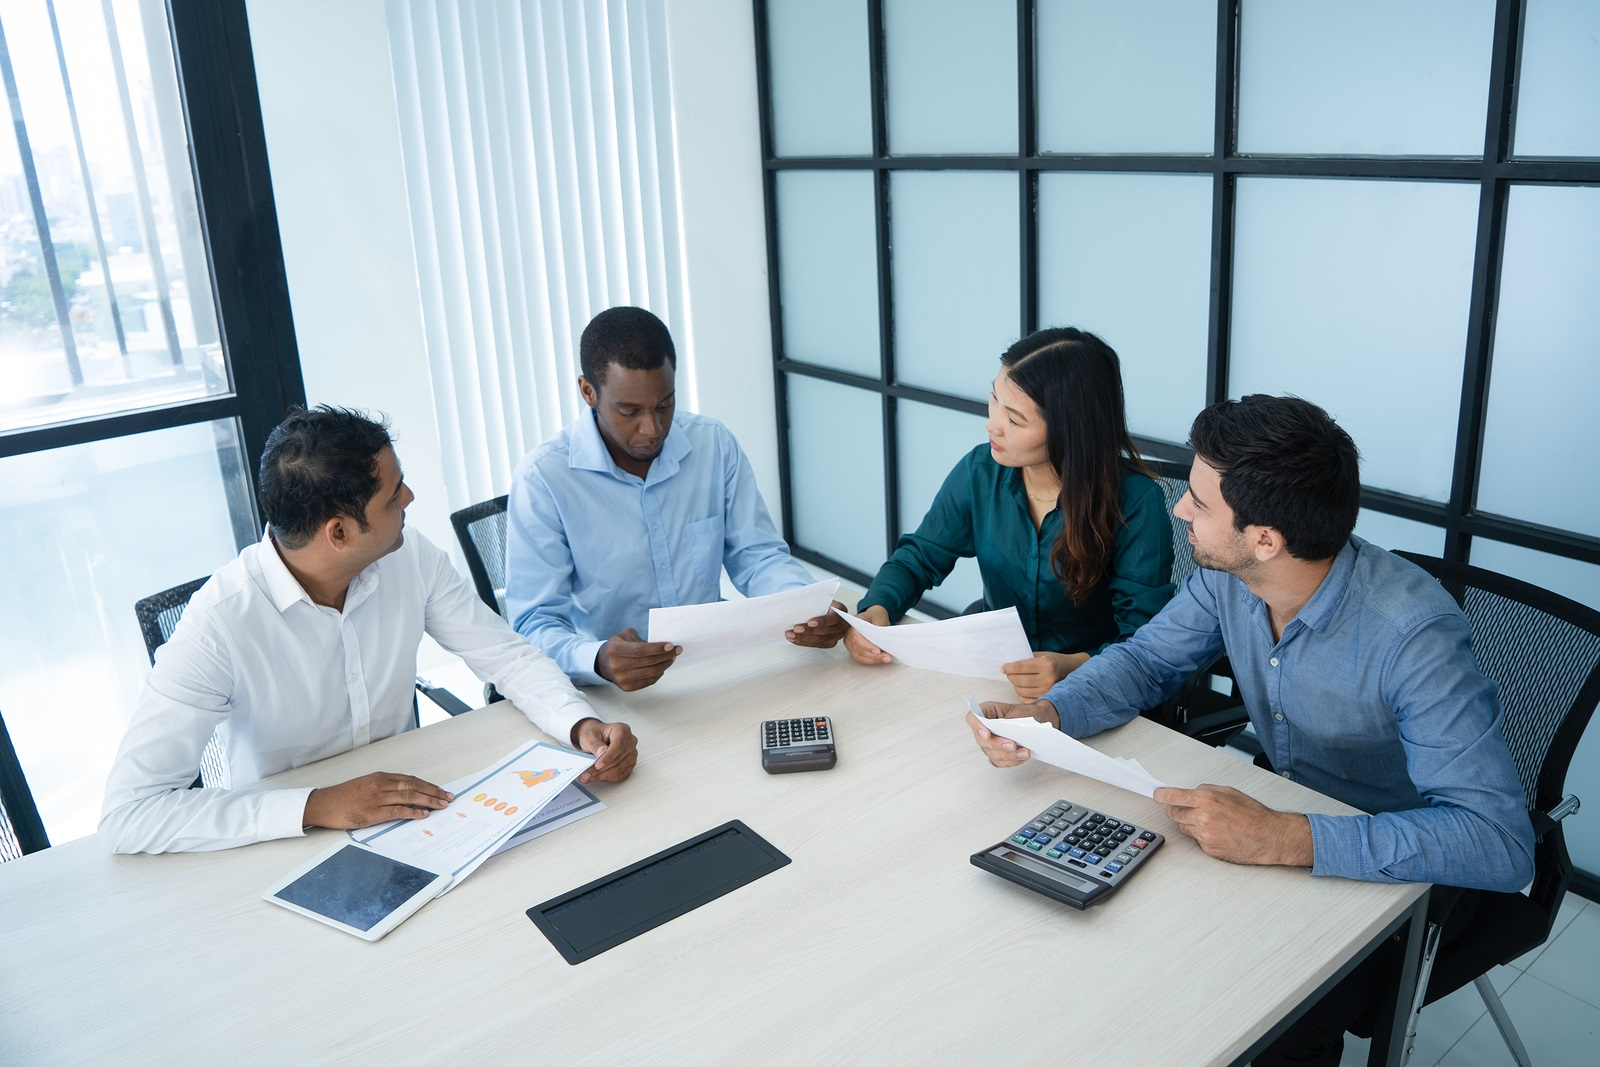 Four employees sitting at table having a business meeting